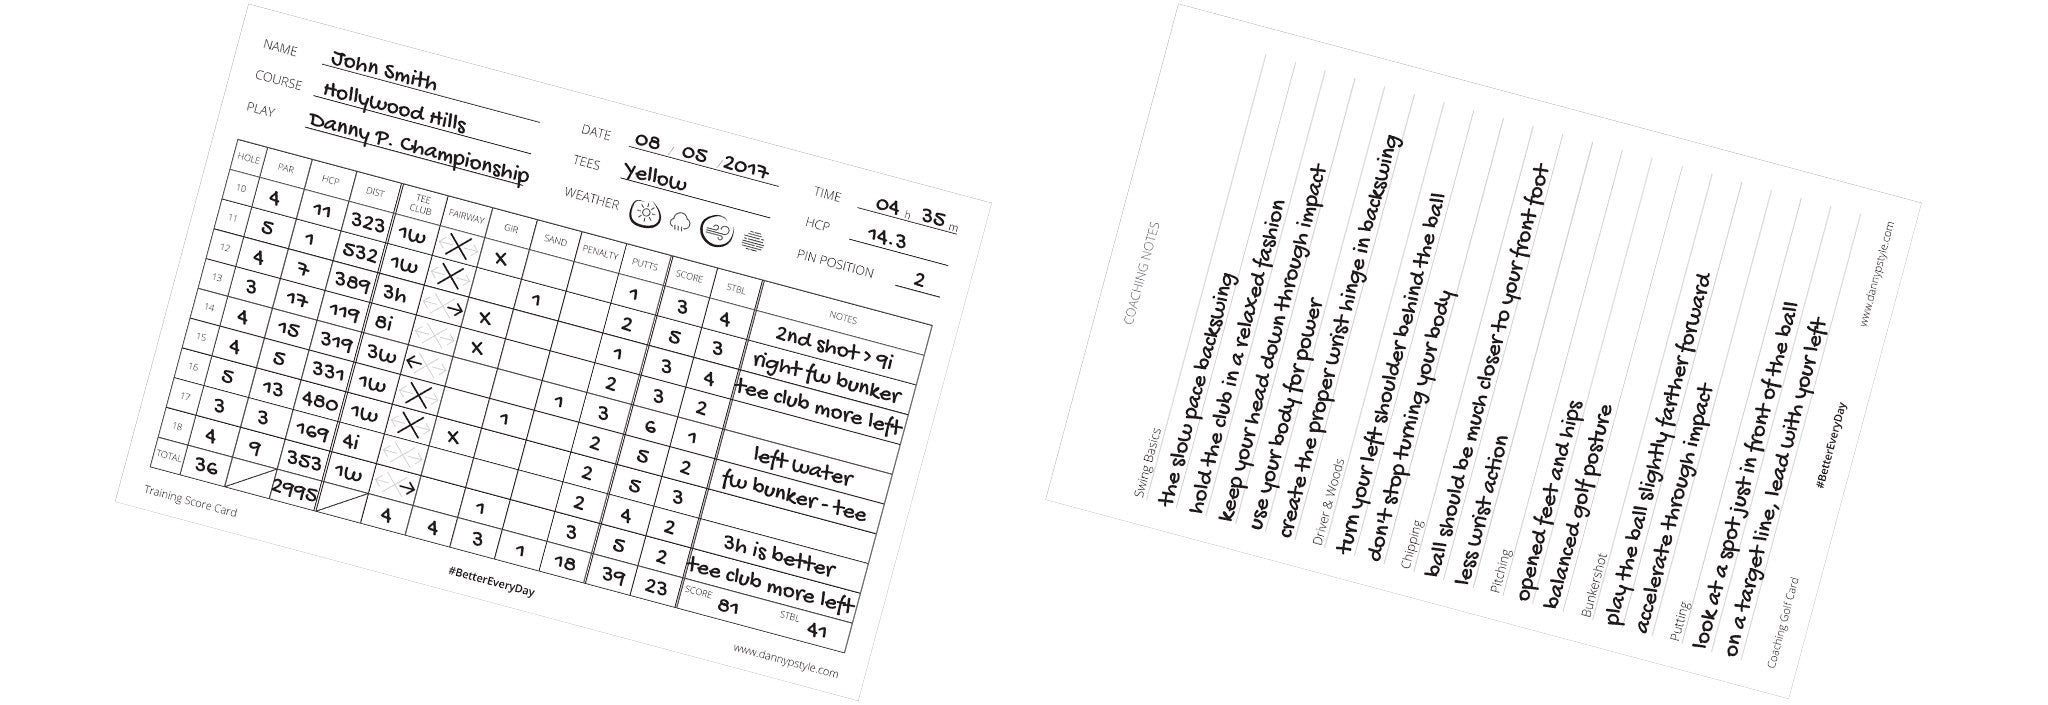 Training score card a Coaching golf card wireframe